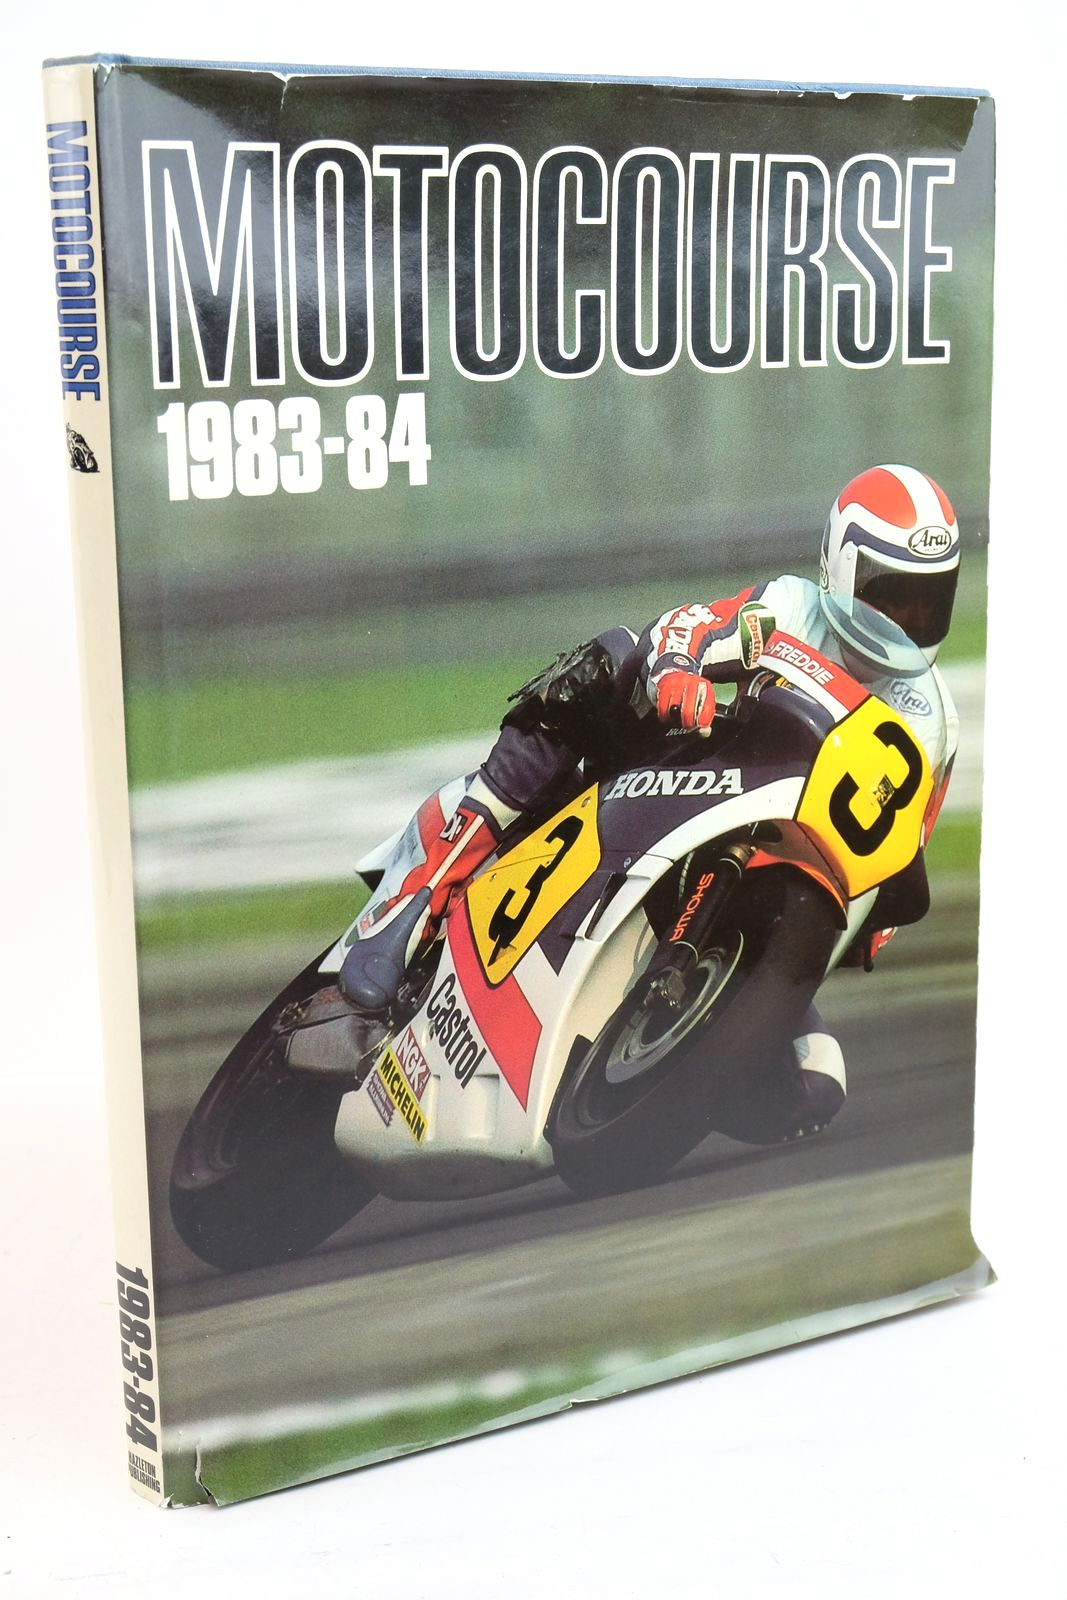 Photo of MOTOCOURSE 1983-84 published by Hazleton Publishing (STOCK CODE: 1321217)  for sale by Stella & Rose's Books